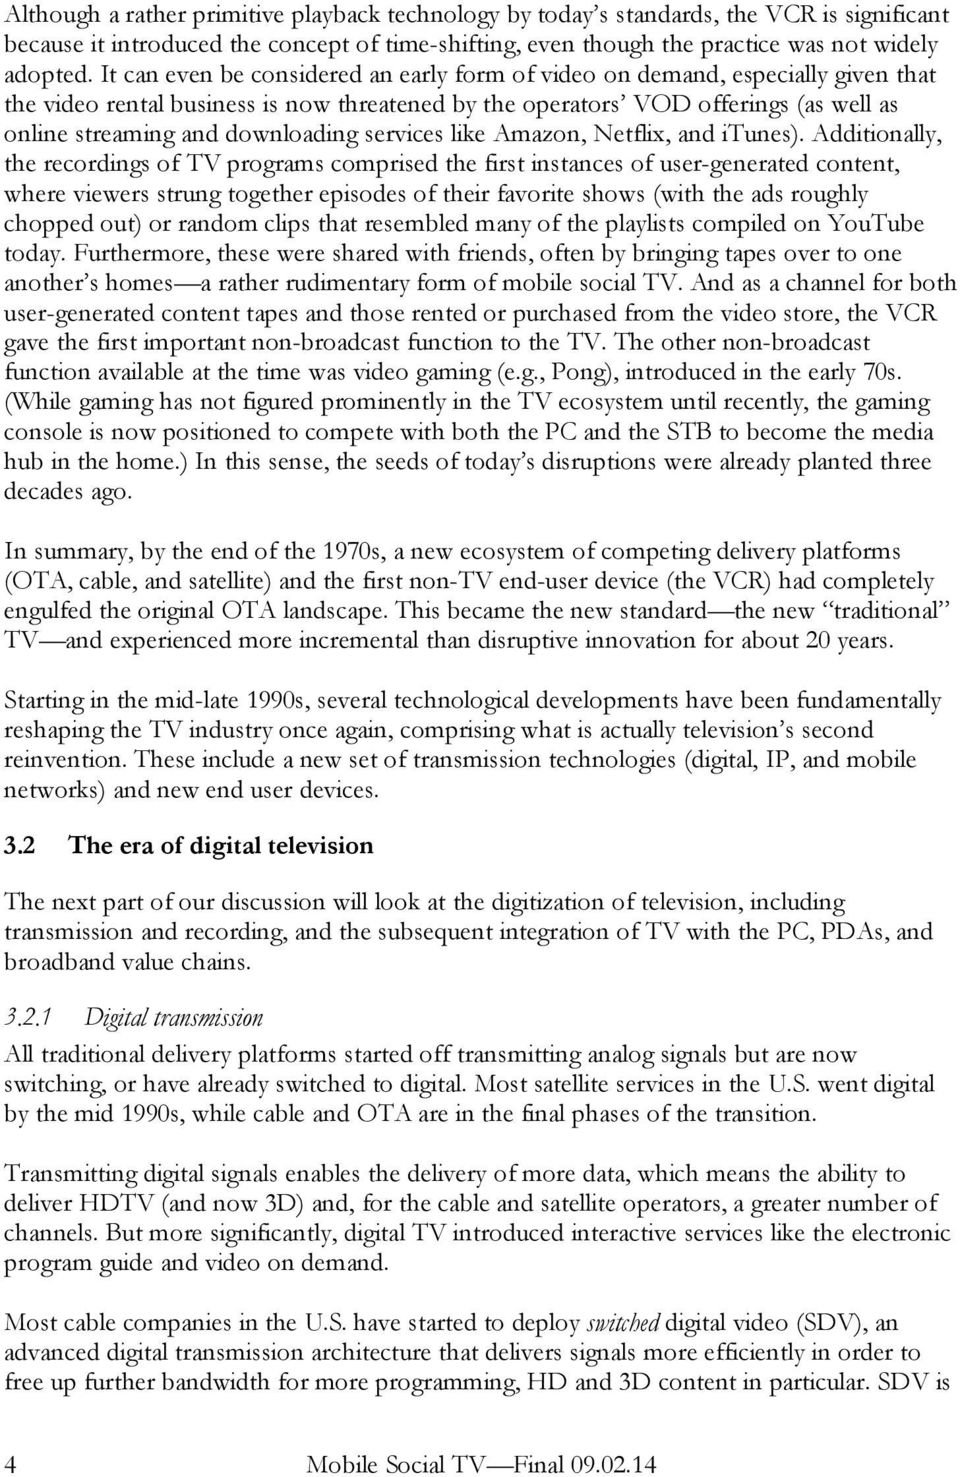 tivo inc tivo versus cable and satellite dvr can tivo survive View homework help - week 7 case study from mgt 313 at american international case # 27 tivo, inc: tivo vs cable and satellite dvr can tivo survive.